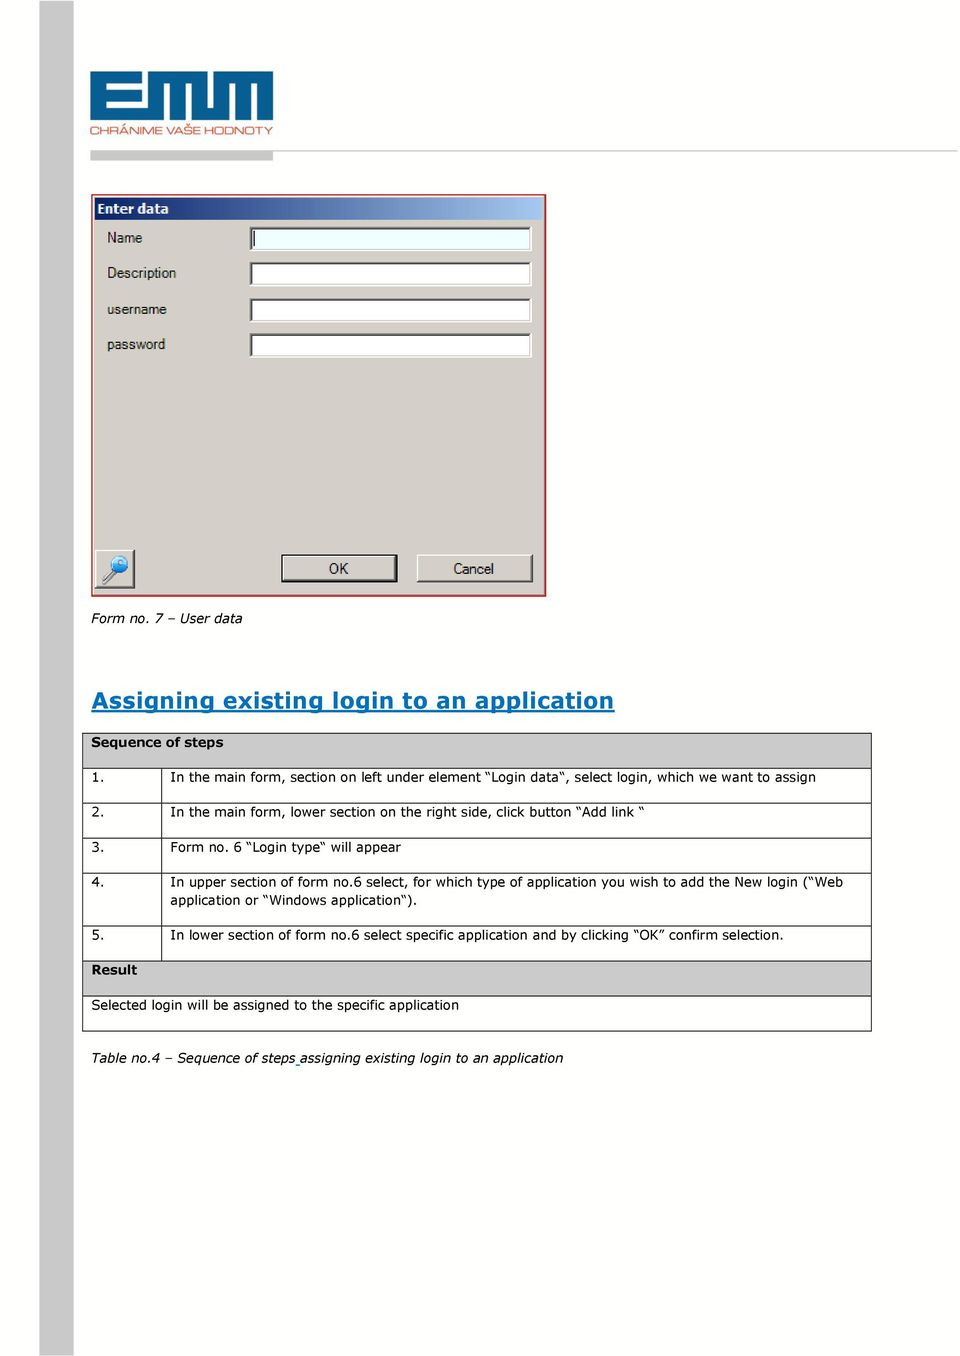 In the main form, lower section on the right side, click button Add link 3. Form no. 6 Login type will appear 4. In upper section of form no.